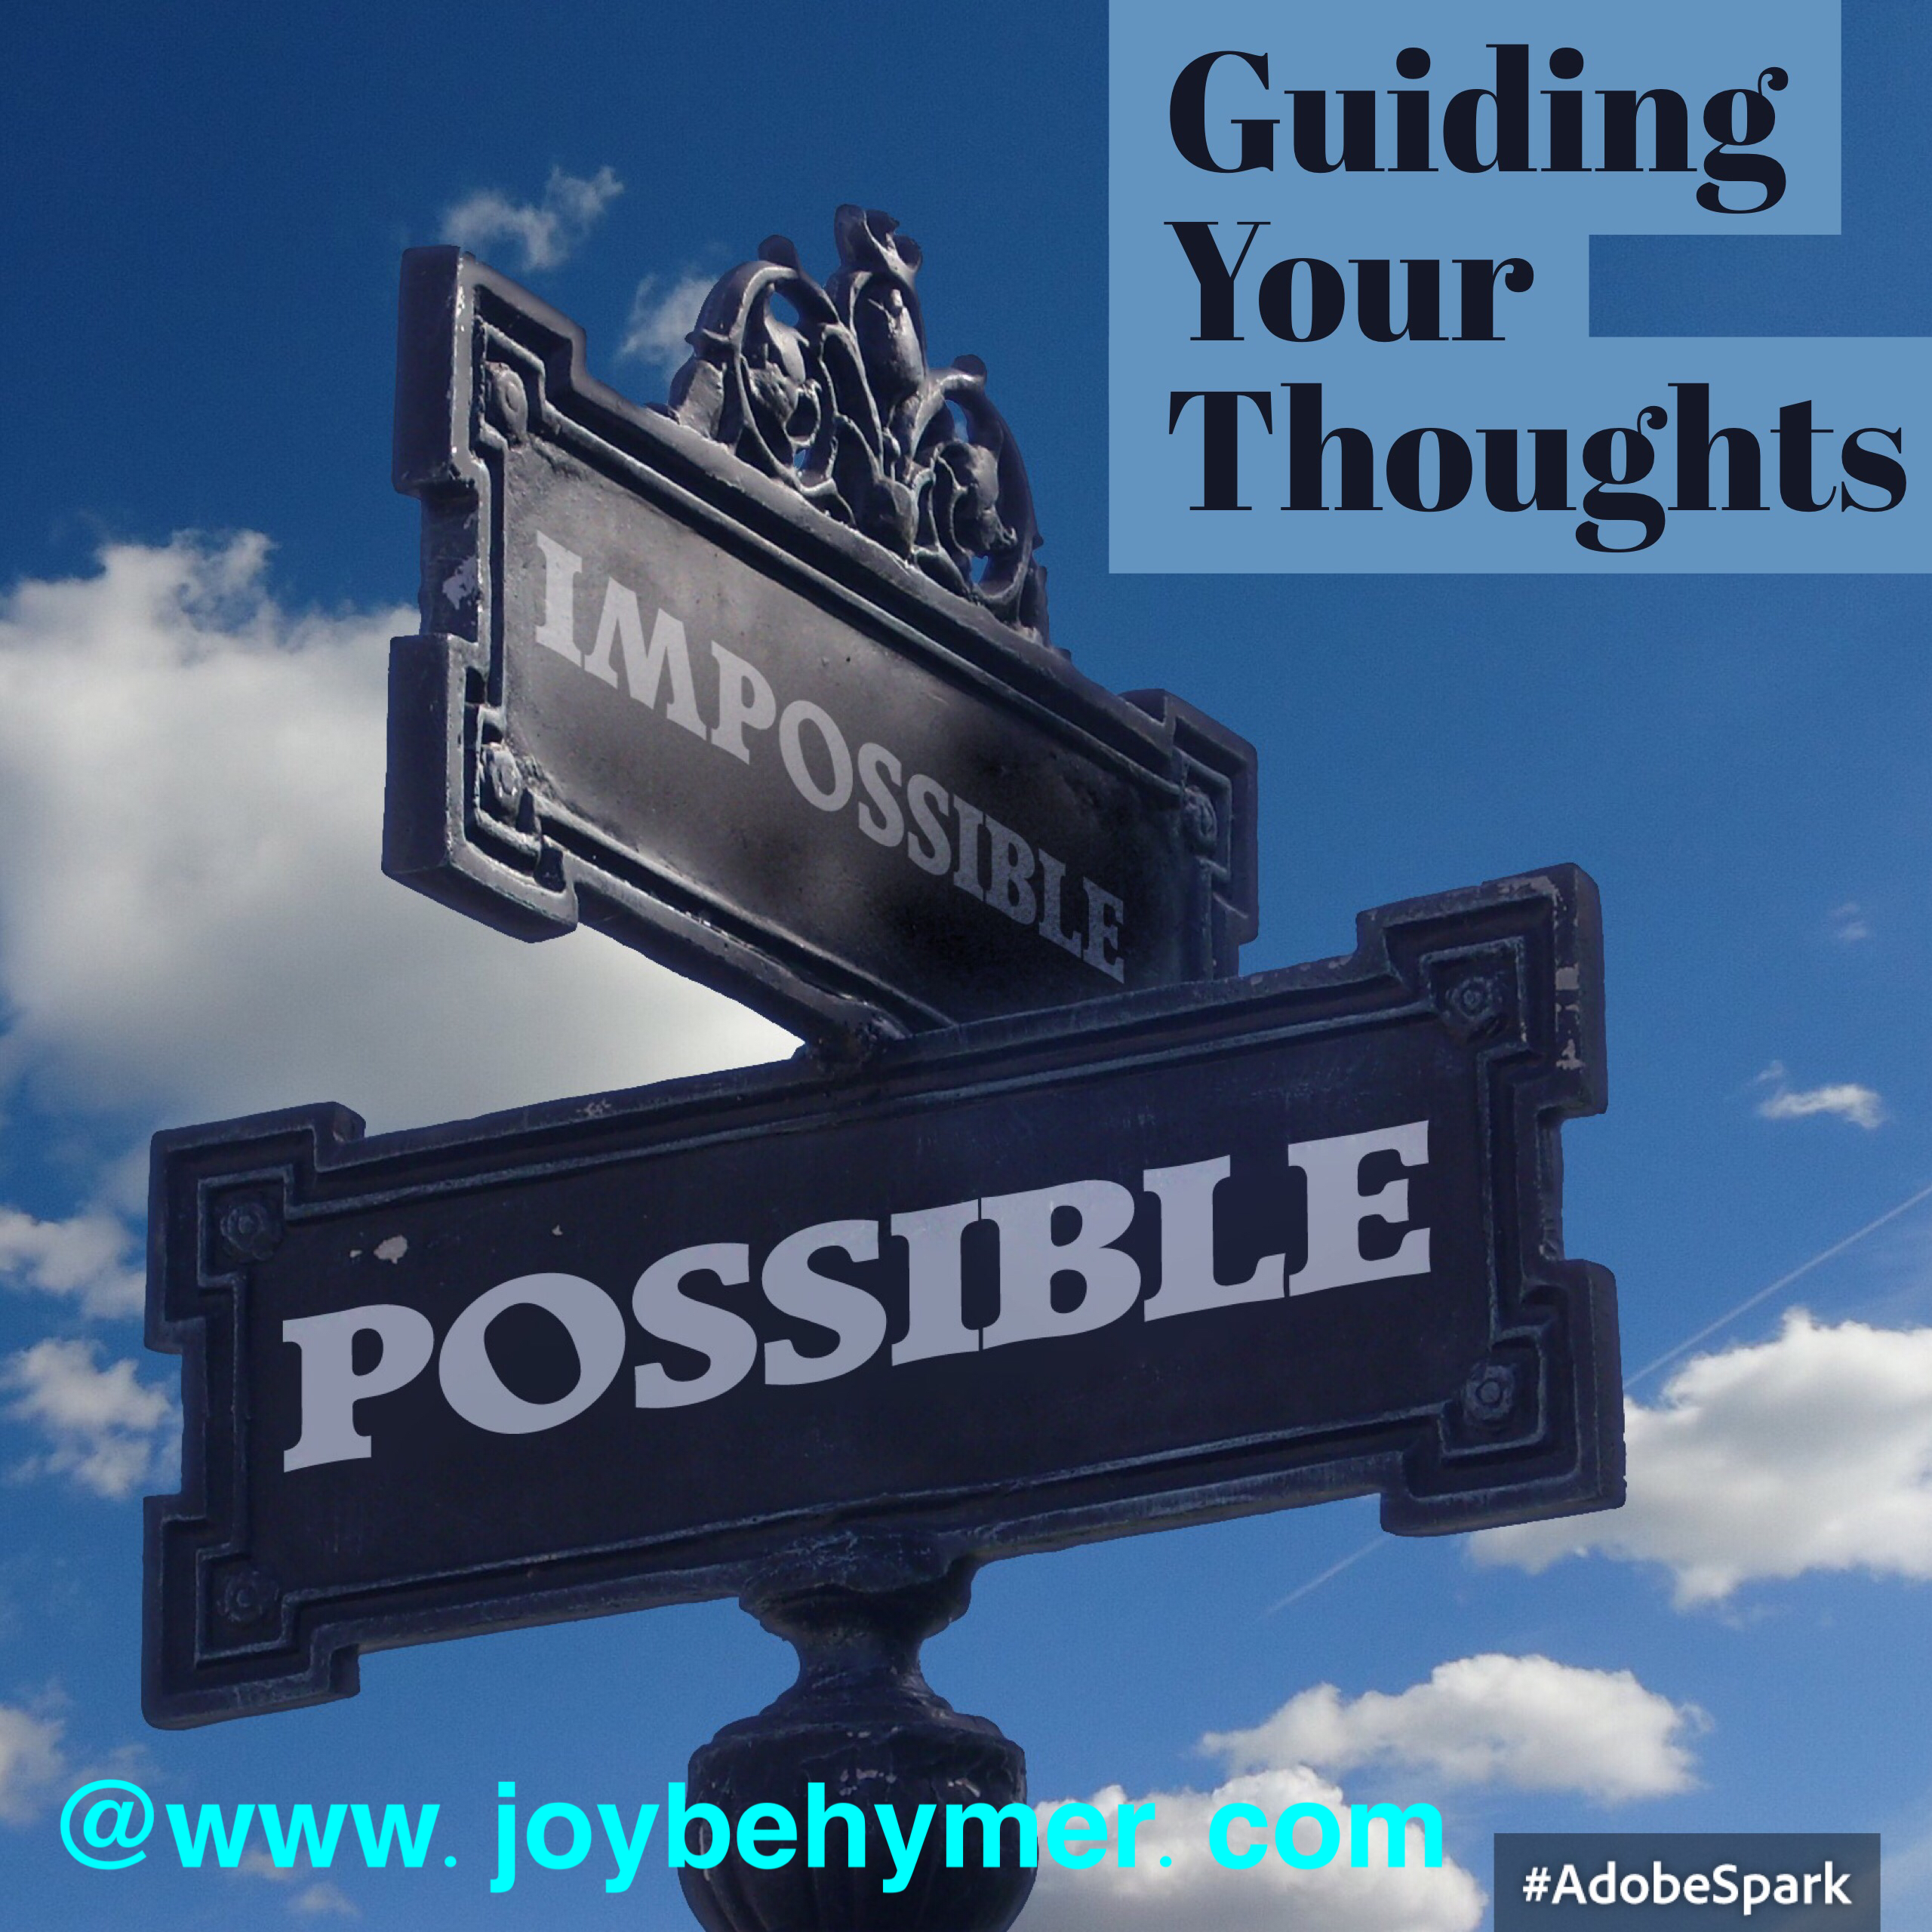 Guiding our thoughts